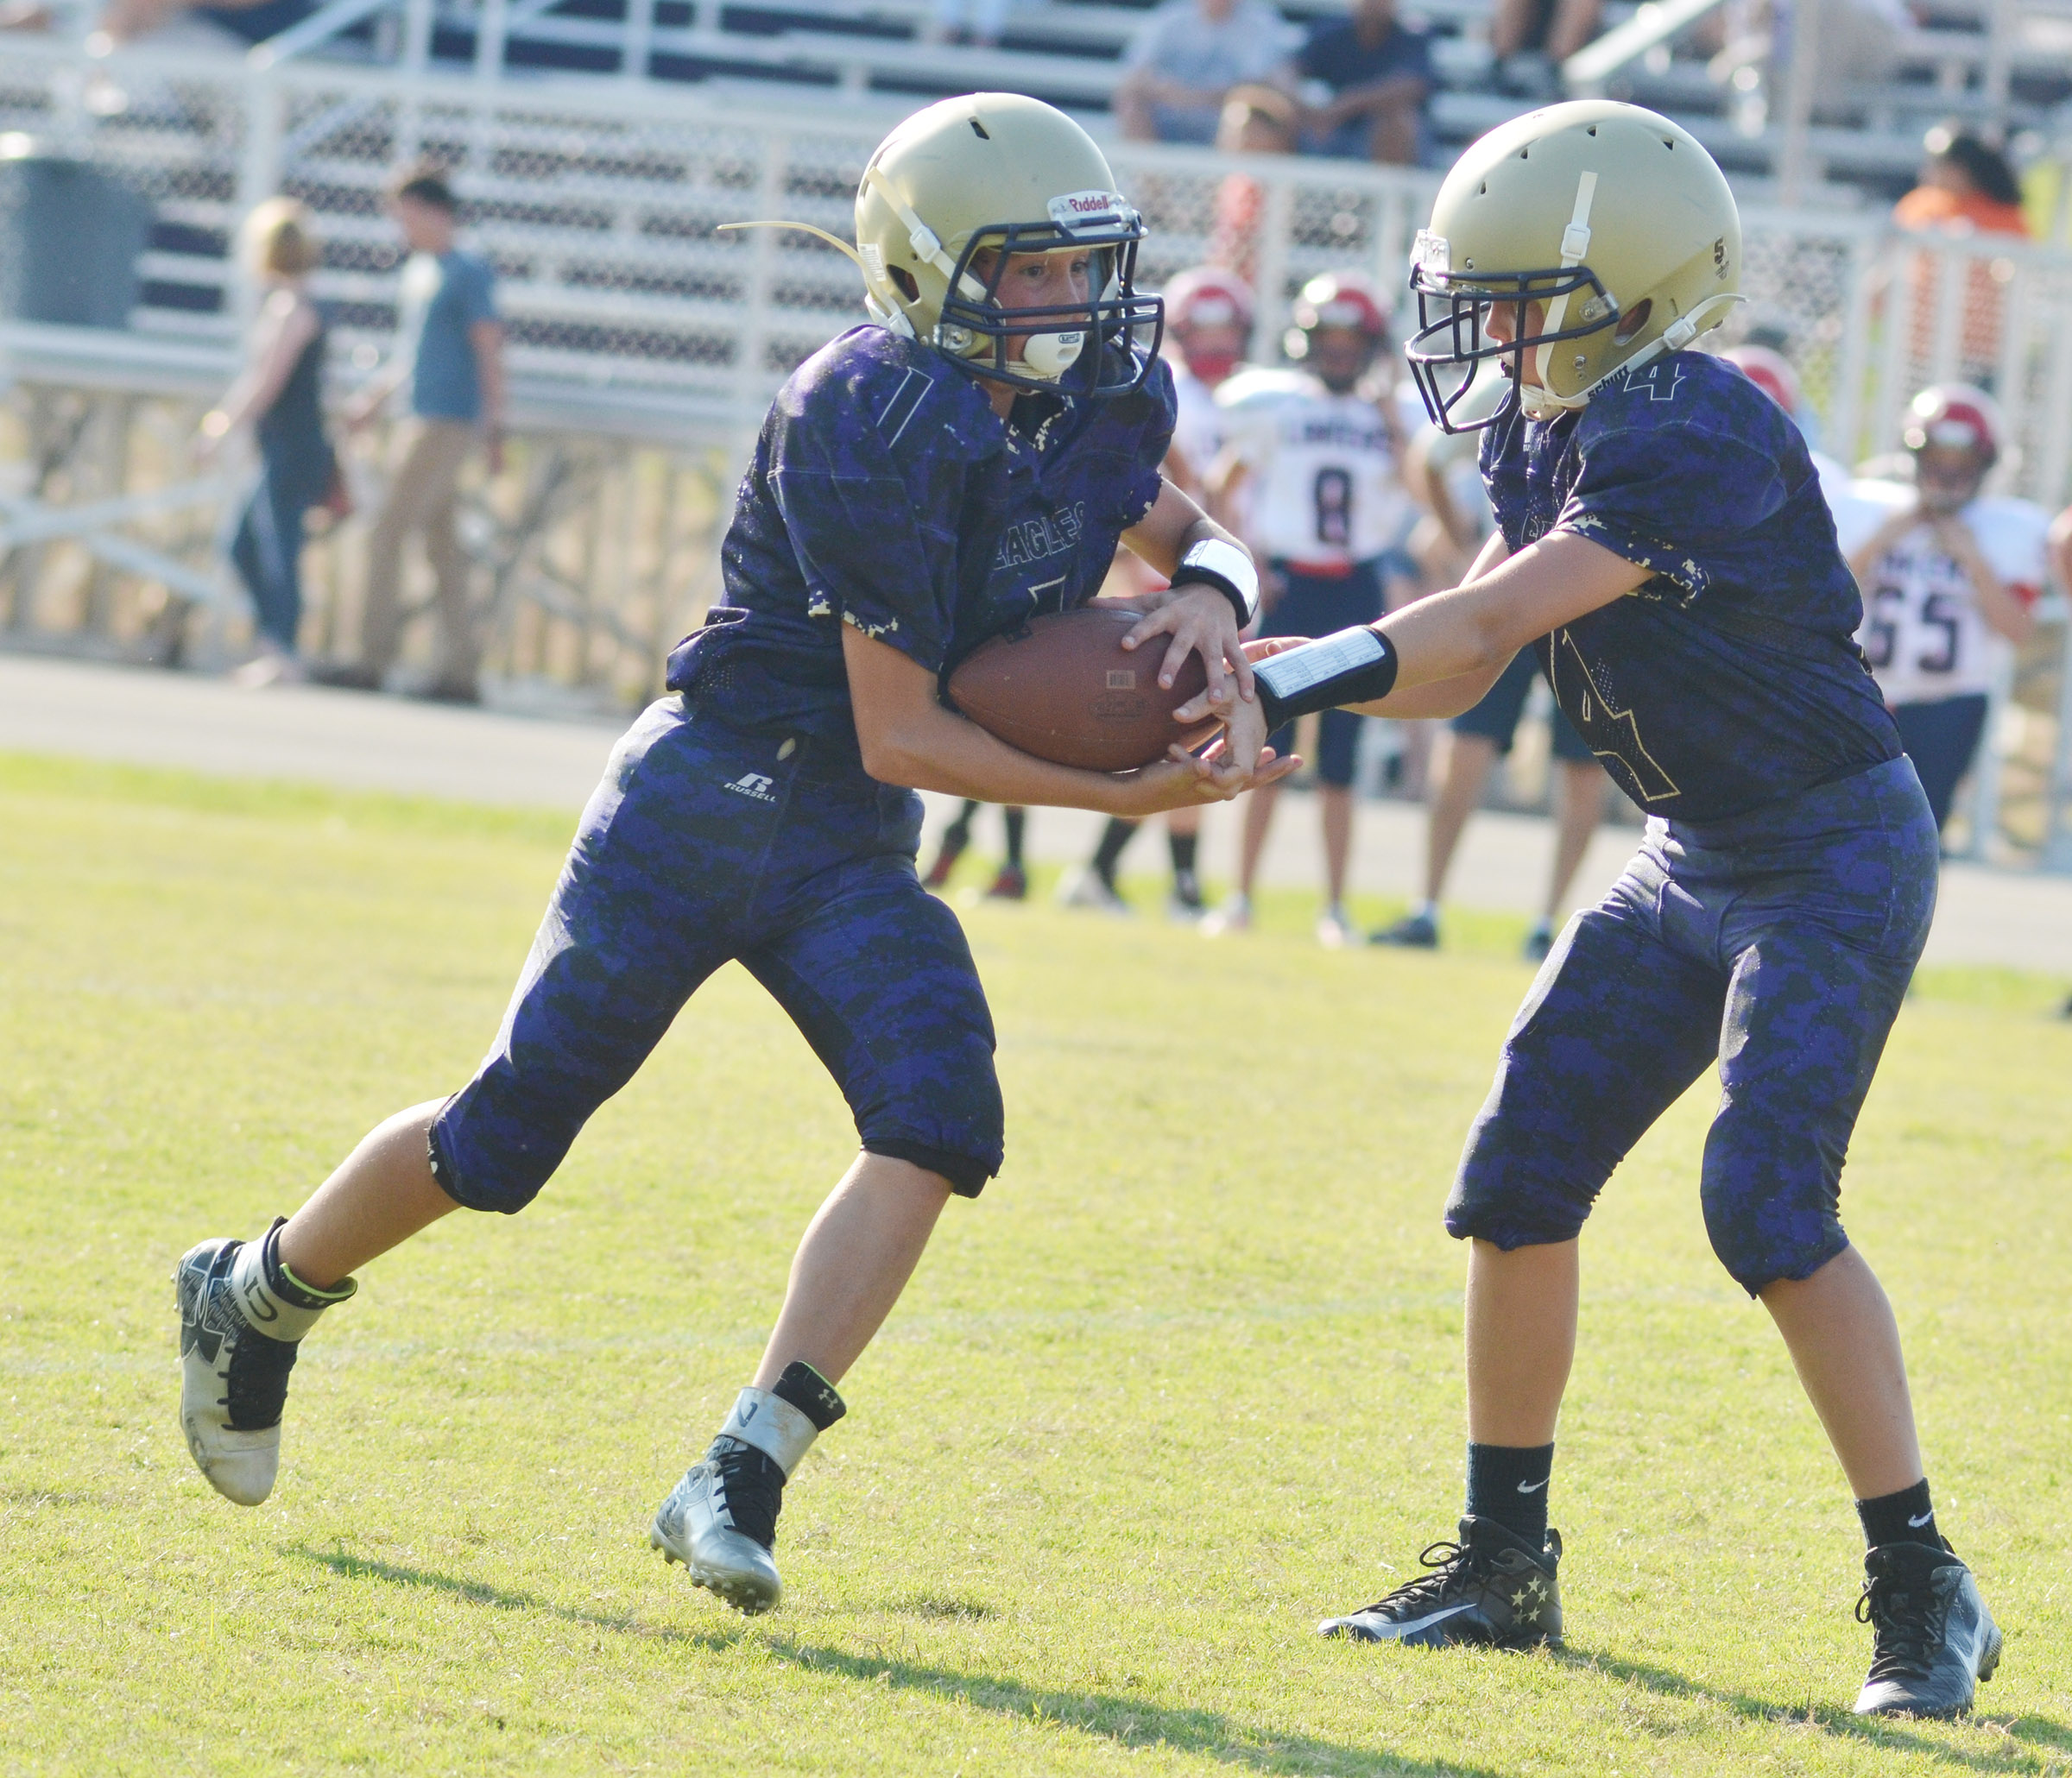 CMS seventh-grader Konner Forbis hands the ball to eighth-grader Dakota Harris.